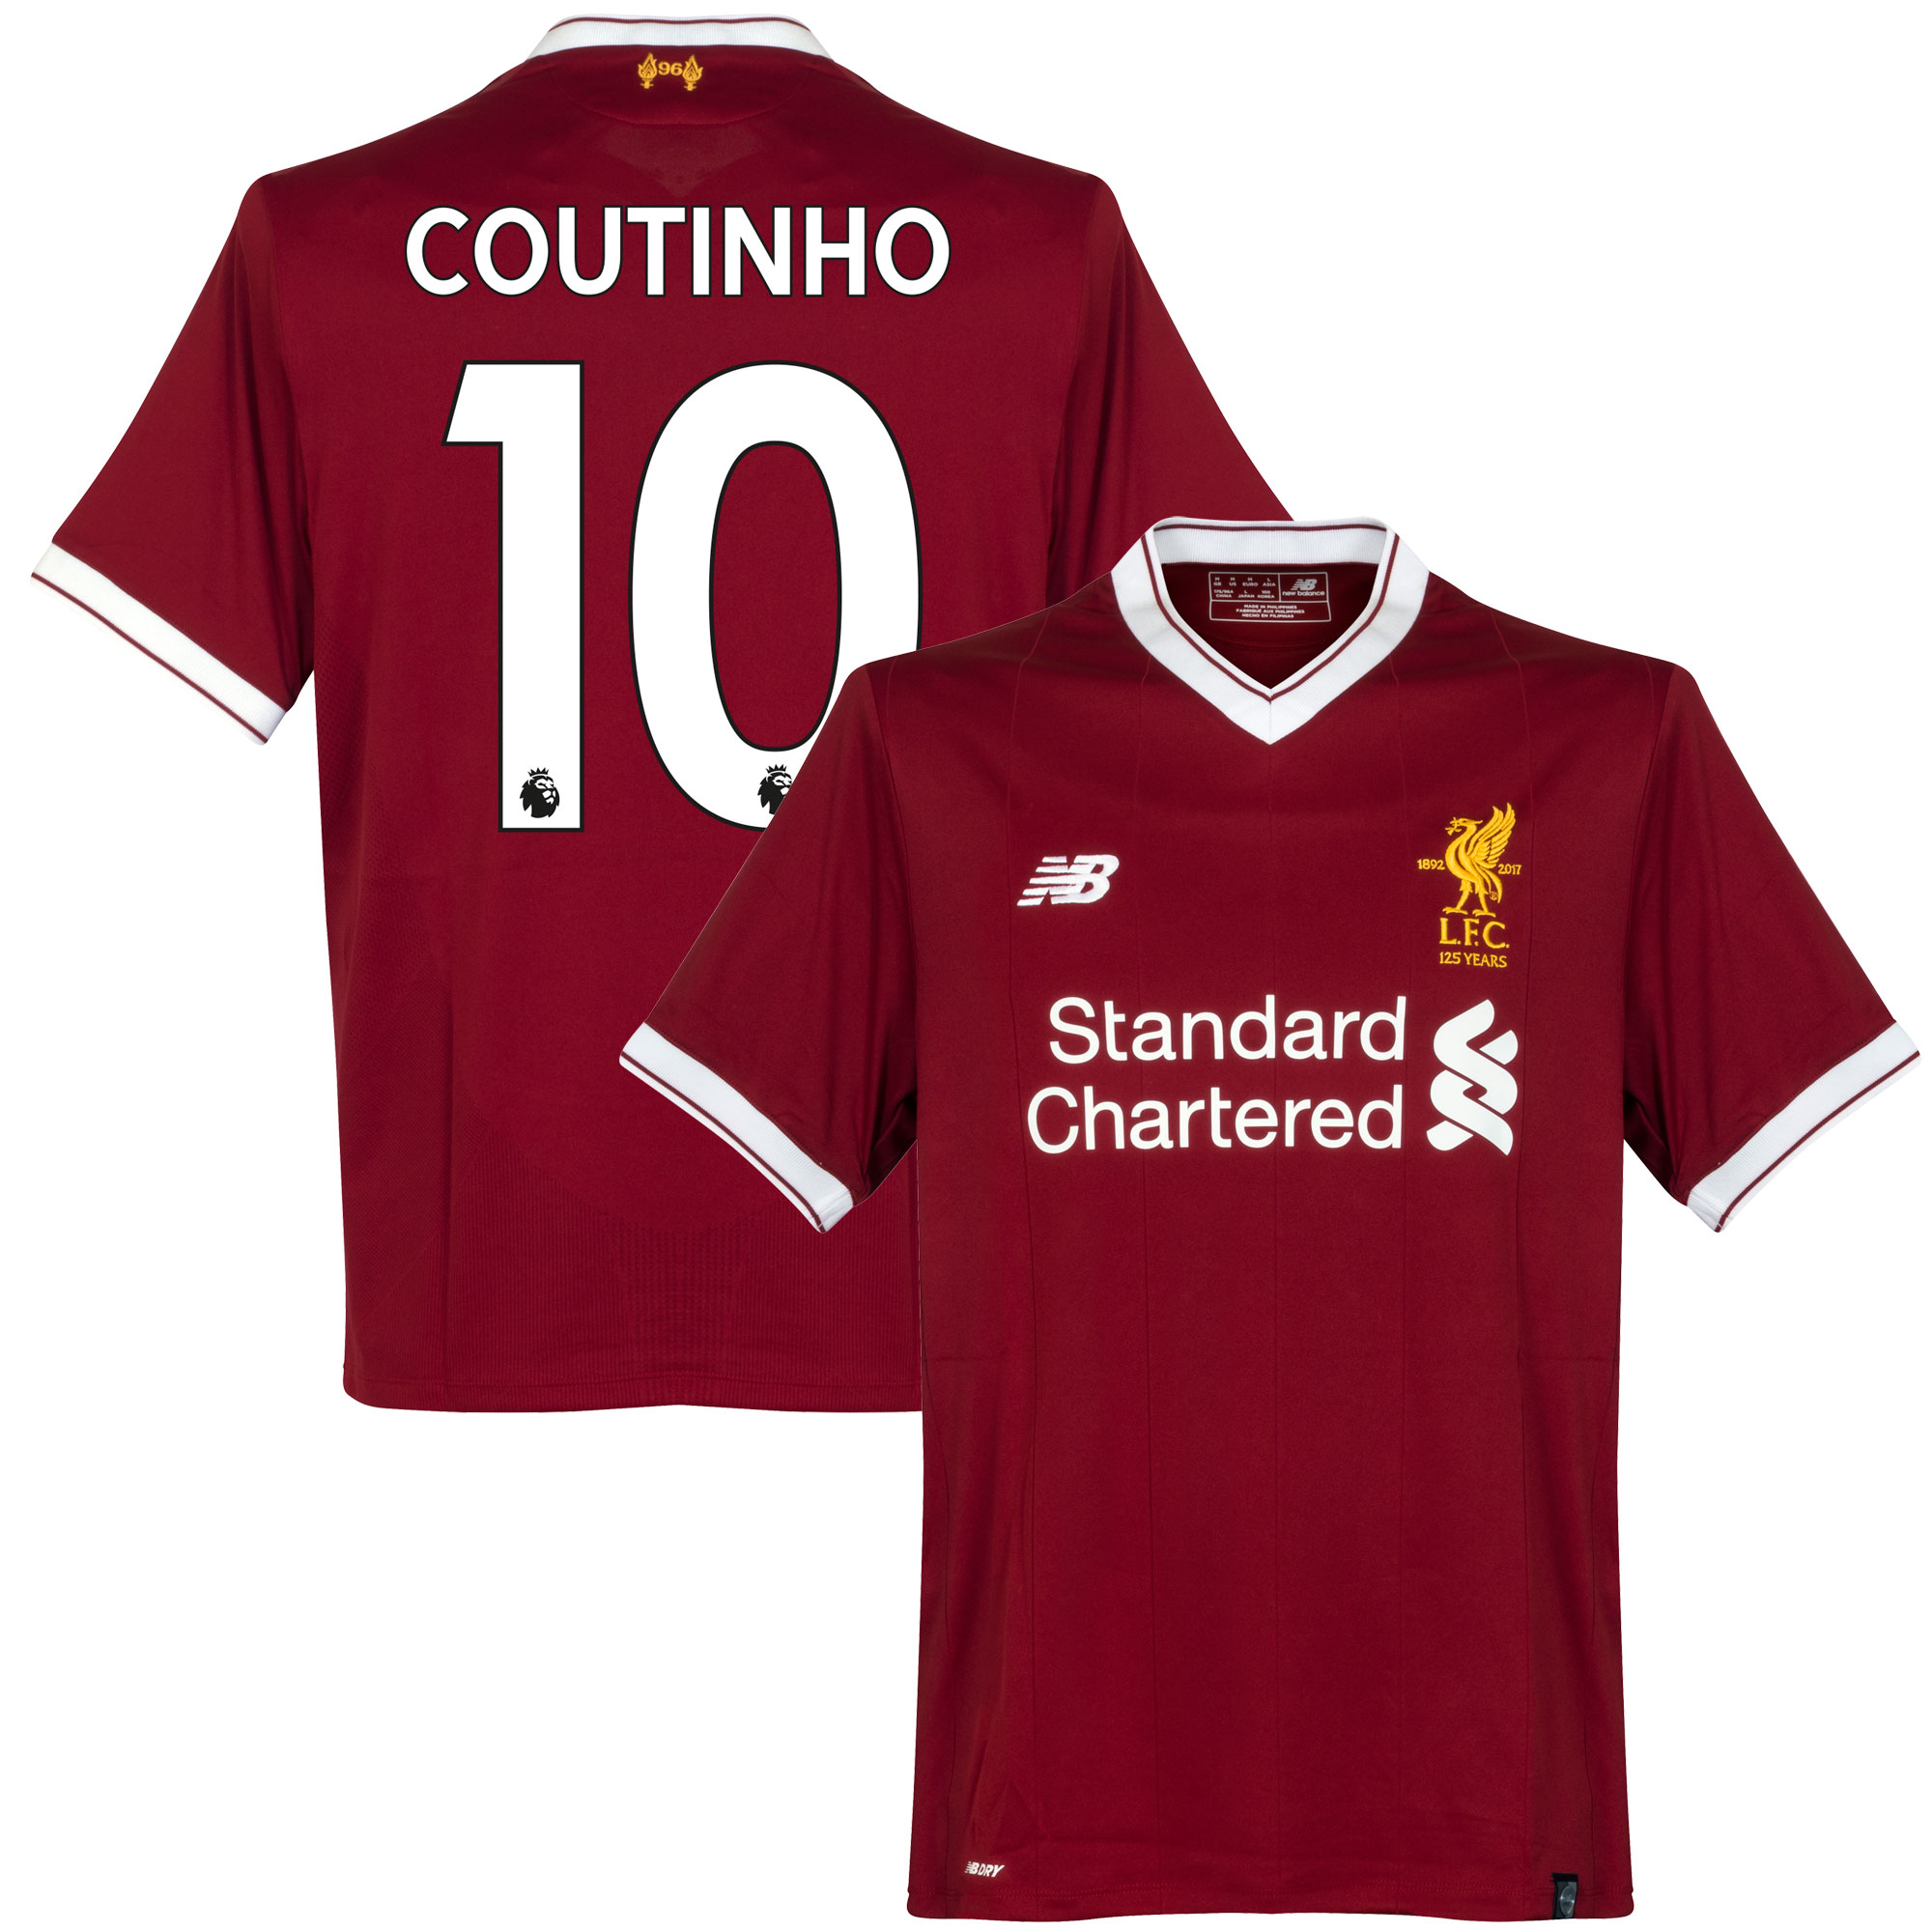 Liverpool Home Coutinho Jersey 2017 / 2018 (Authentic EPL Printing) - M